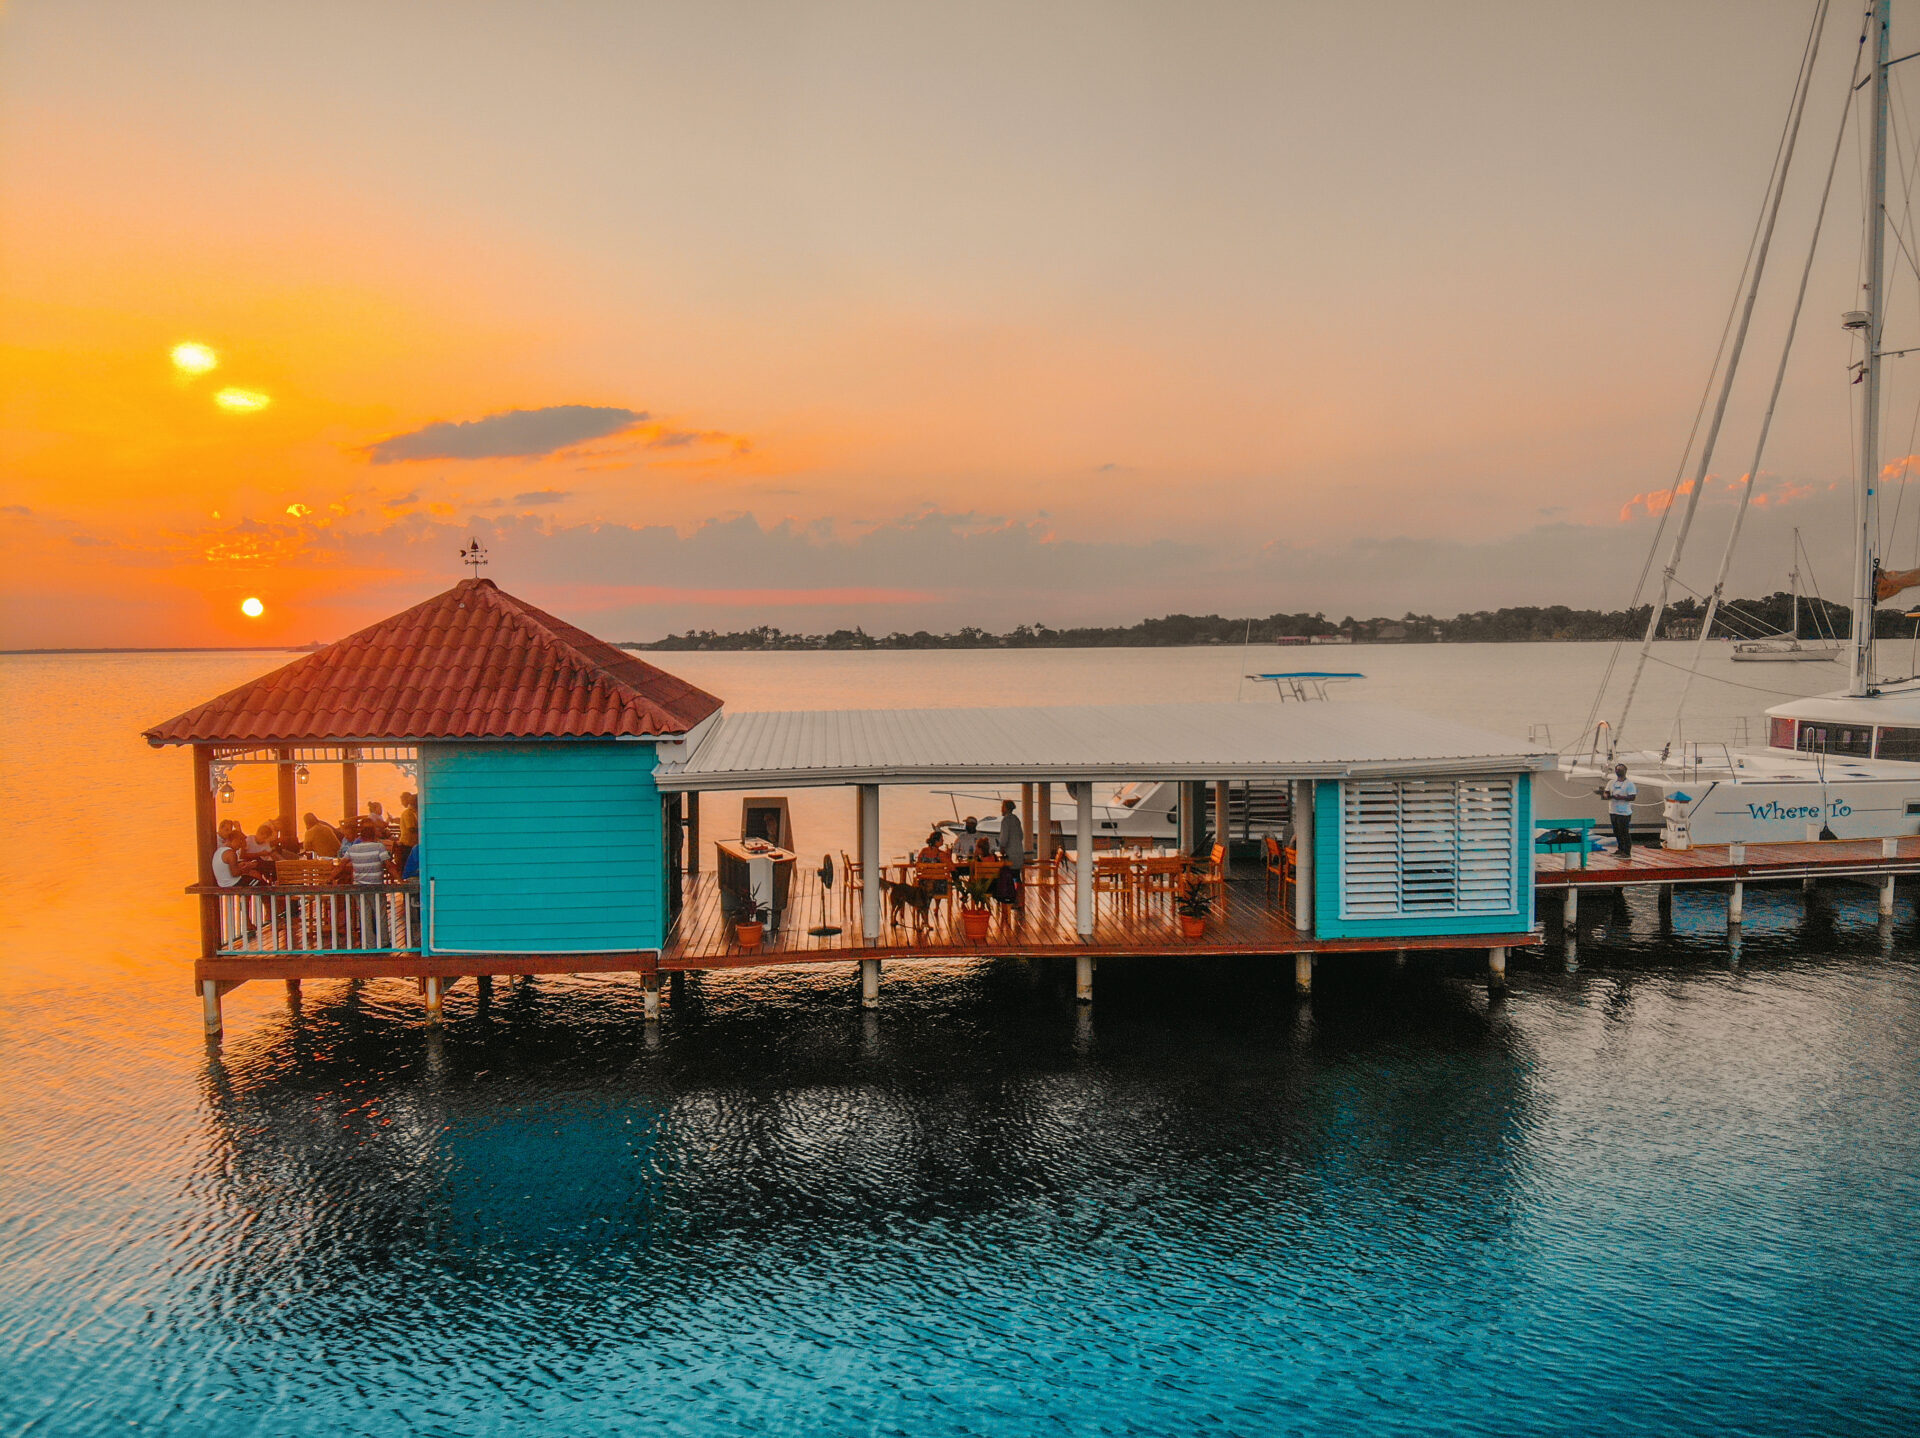 placencia-sunset-southern-belize-kevin-quischan